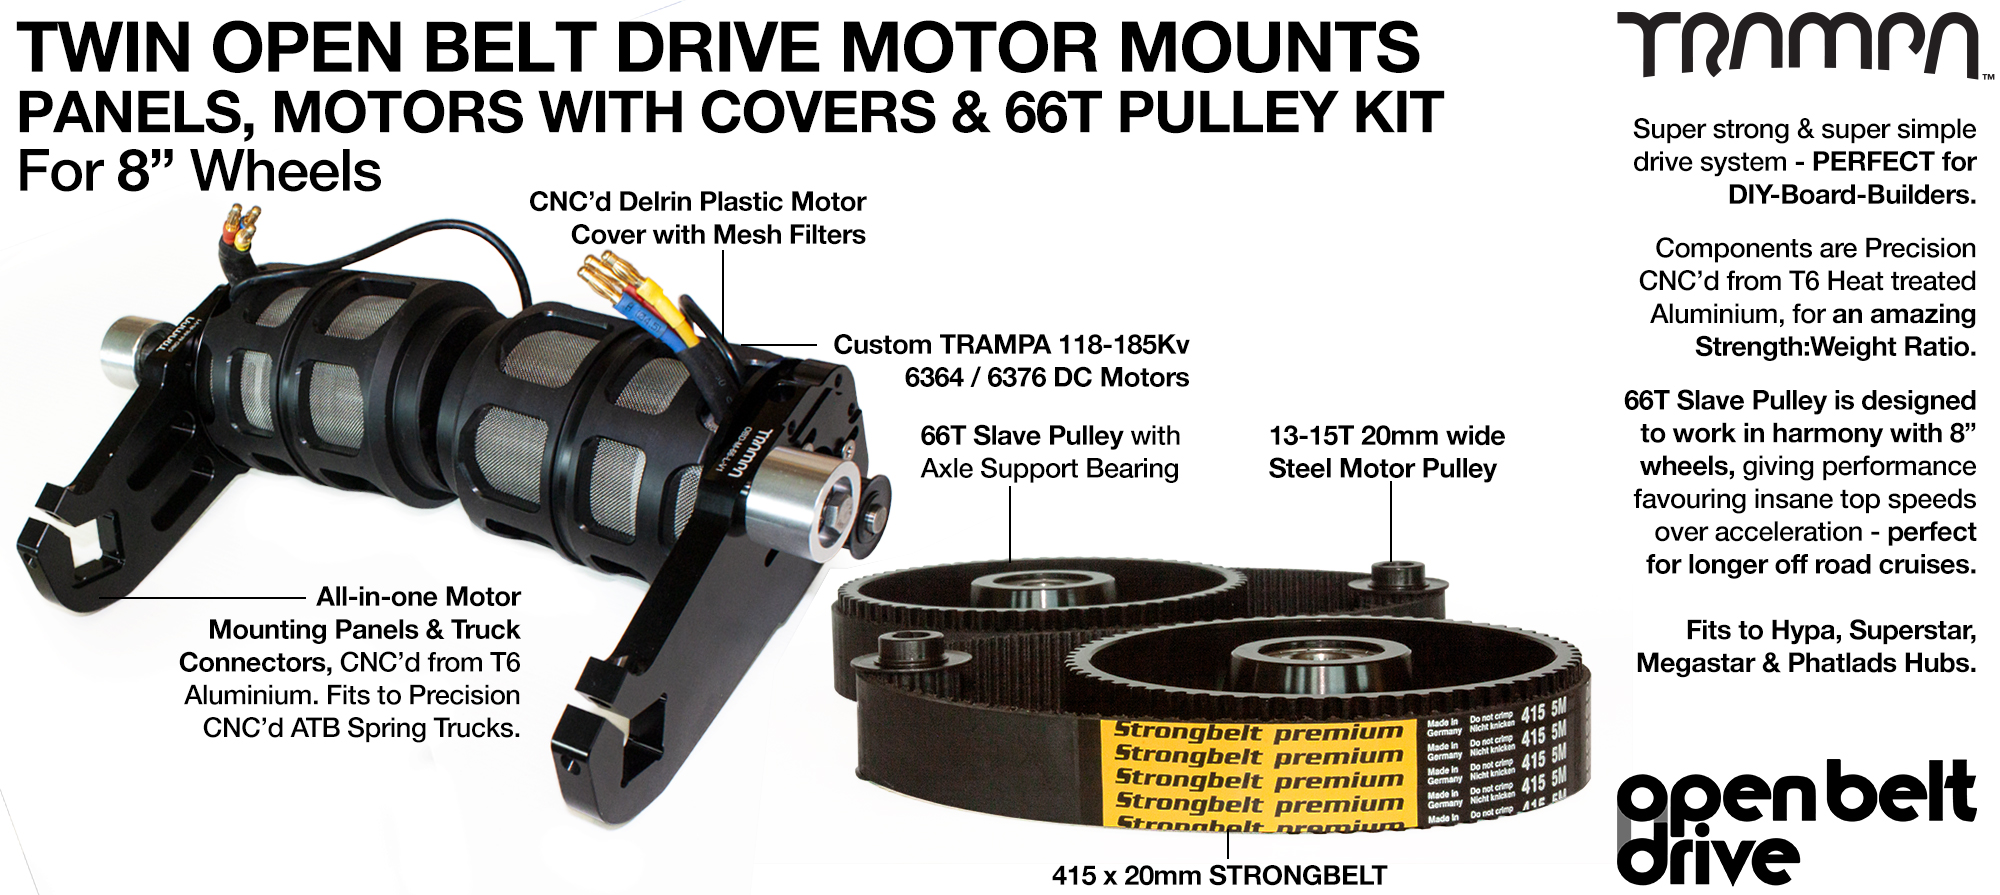 66T OBD Motor Mount with 66 tooth Pulley for 8 inch Wheels Custom TRAMPA Motor & Motor Protection Filter - TWIN